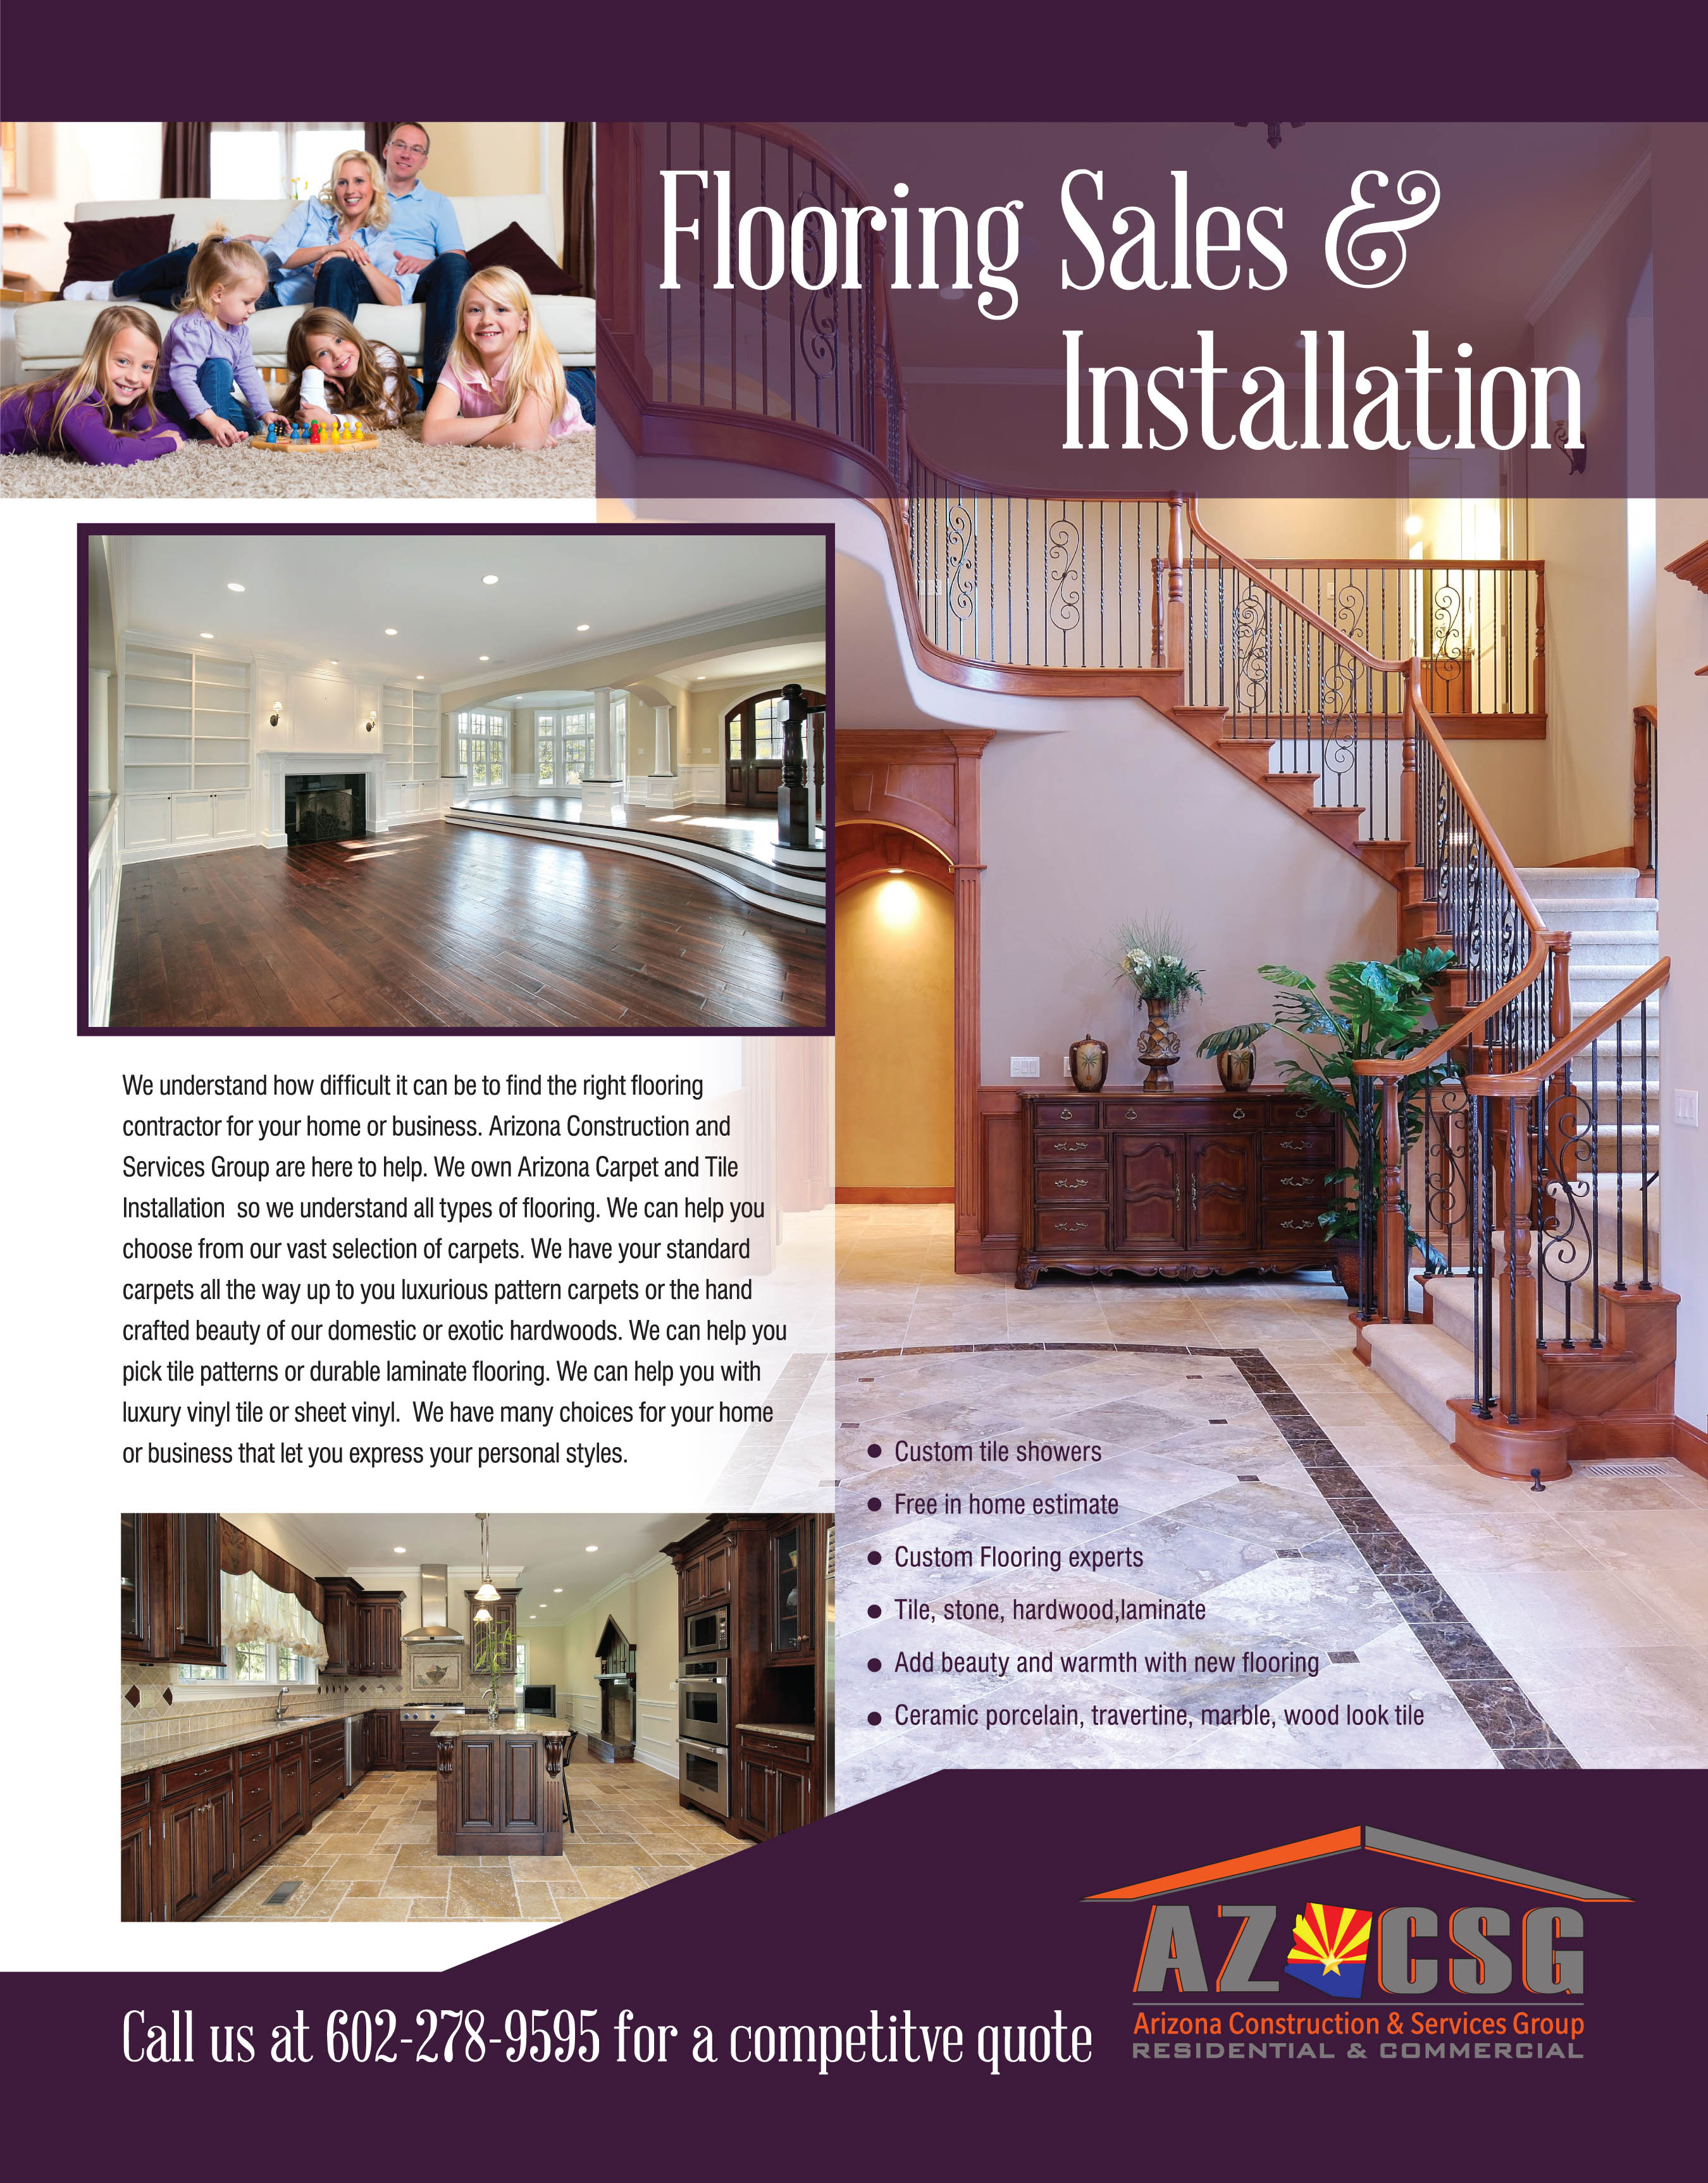 Flooring Sales & Installation Ahwatukee, Avondale, Scottsdale, Gilbert, Chandler, Laveen, Glendale, Carefree, Sun City, Peoria, Goodyear, Youngtown, El Mirage, Phoenix, Tempe, Litchfield park , Surprise, Waddell, Mesa, Anthem